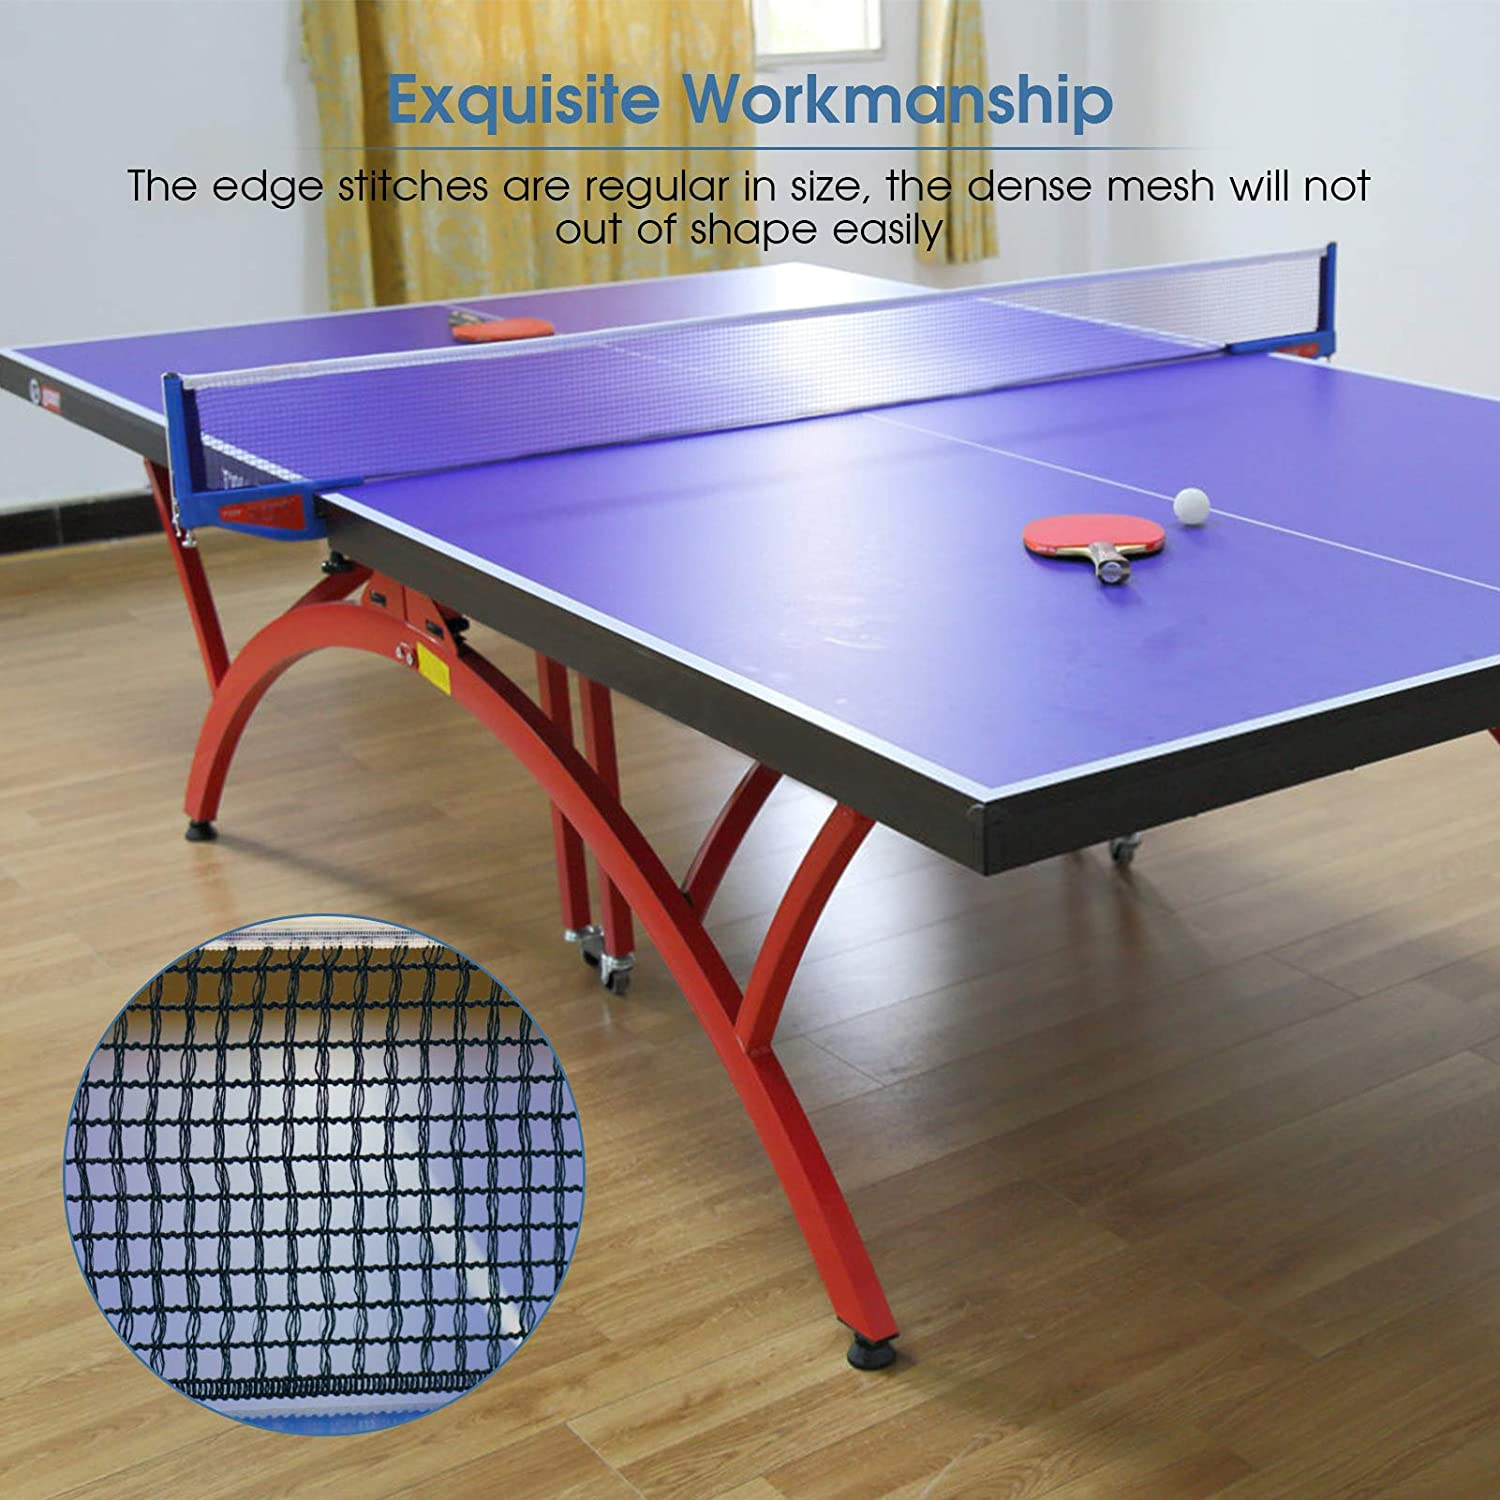 YHG Table Tennis Net Portable Instant Retractable Table Tennis Rack Net for Training and Practicing Table Tennis